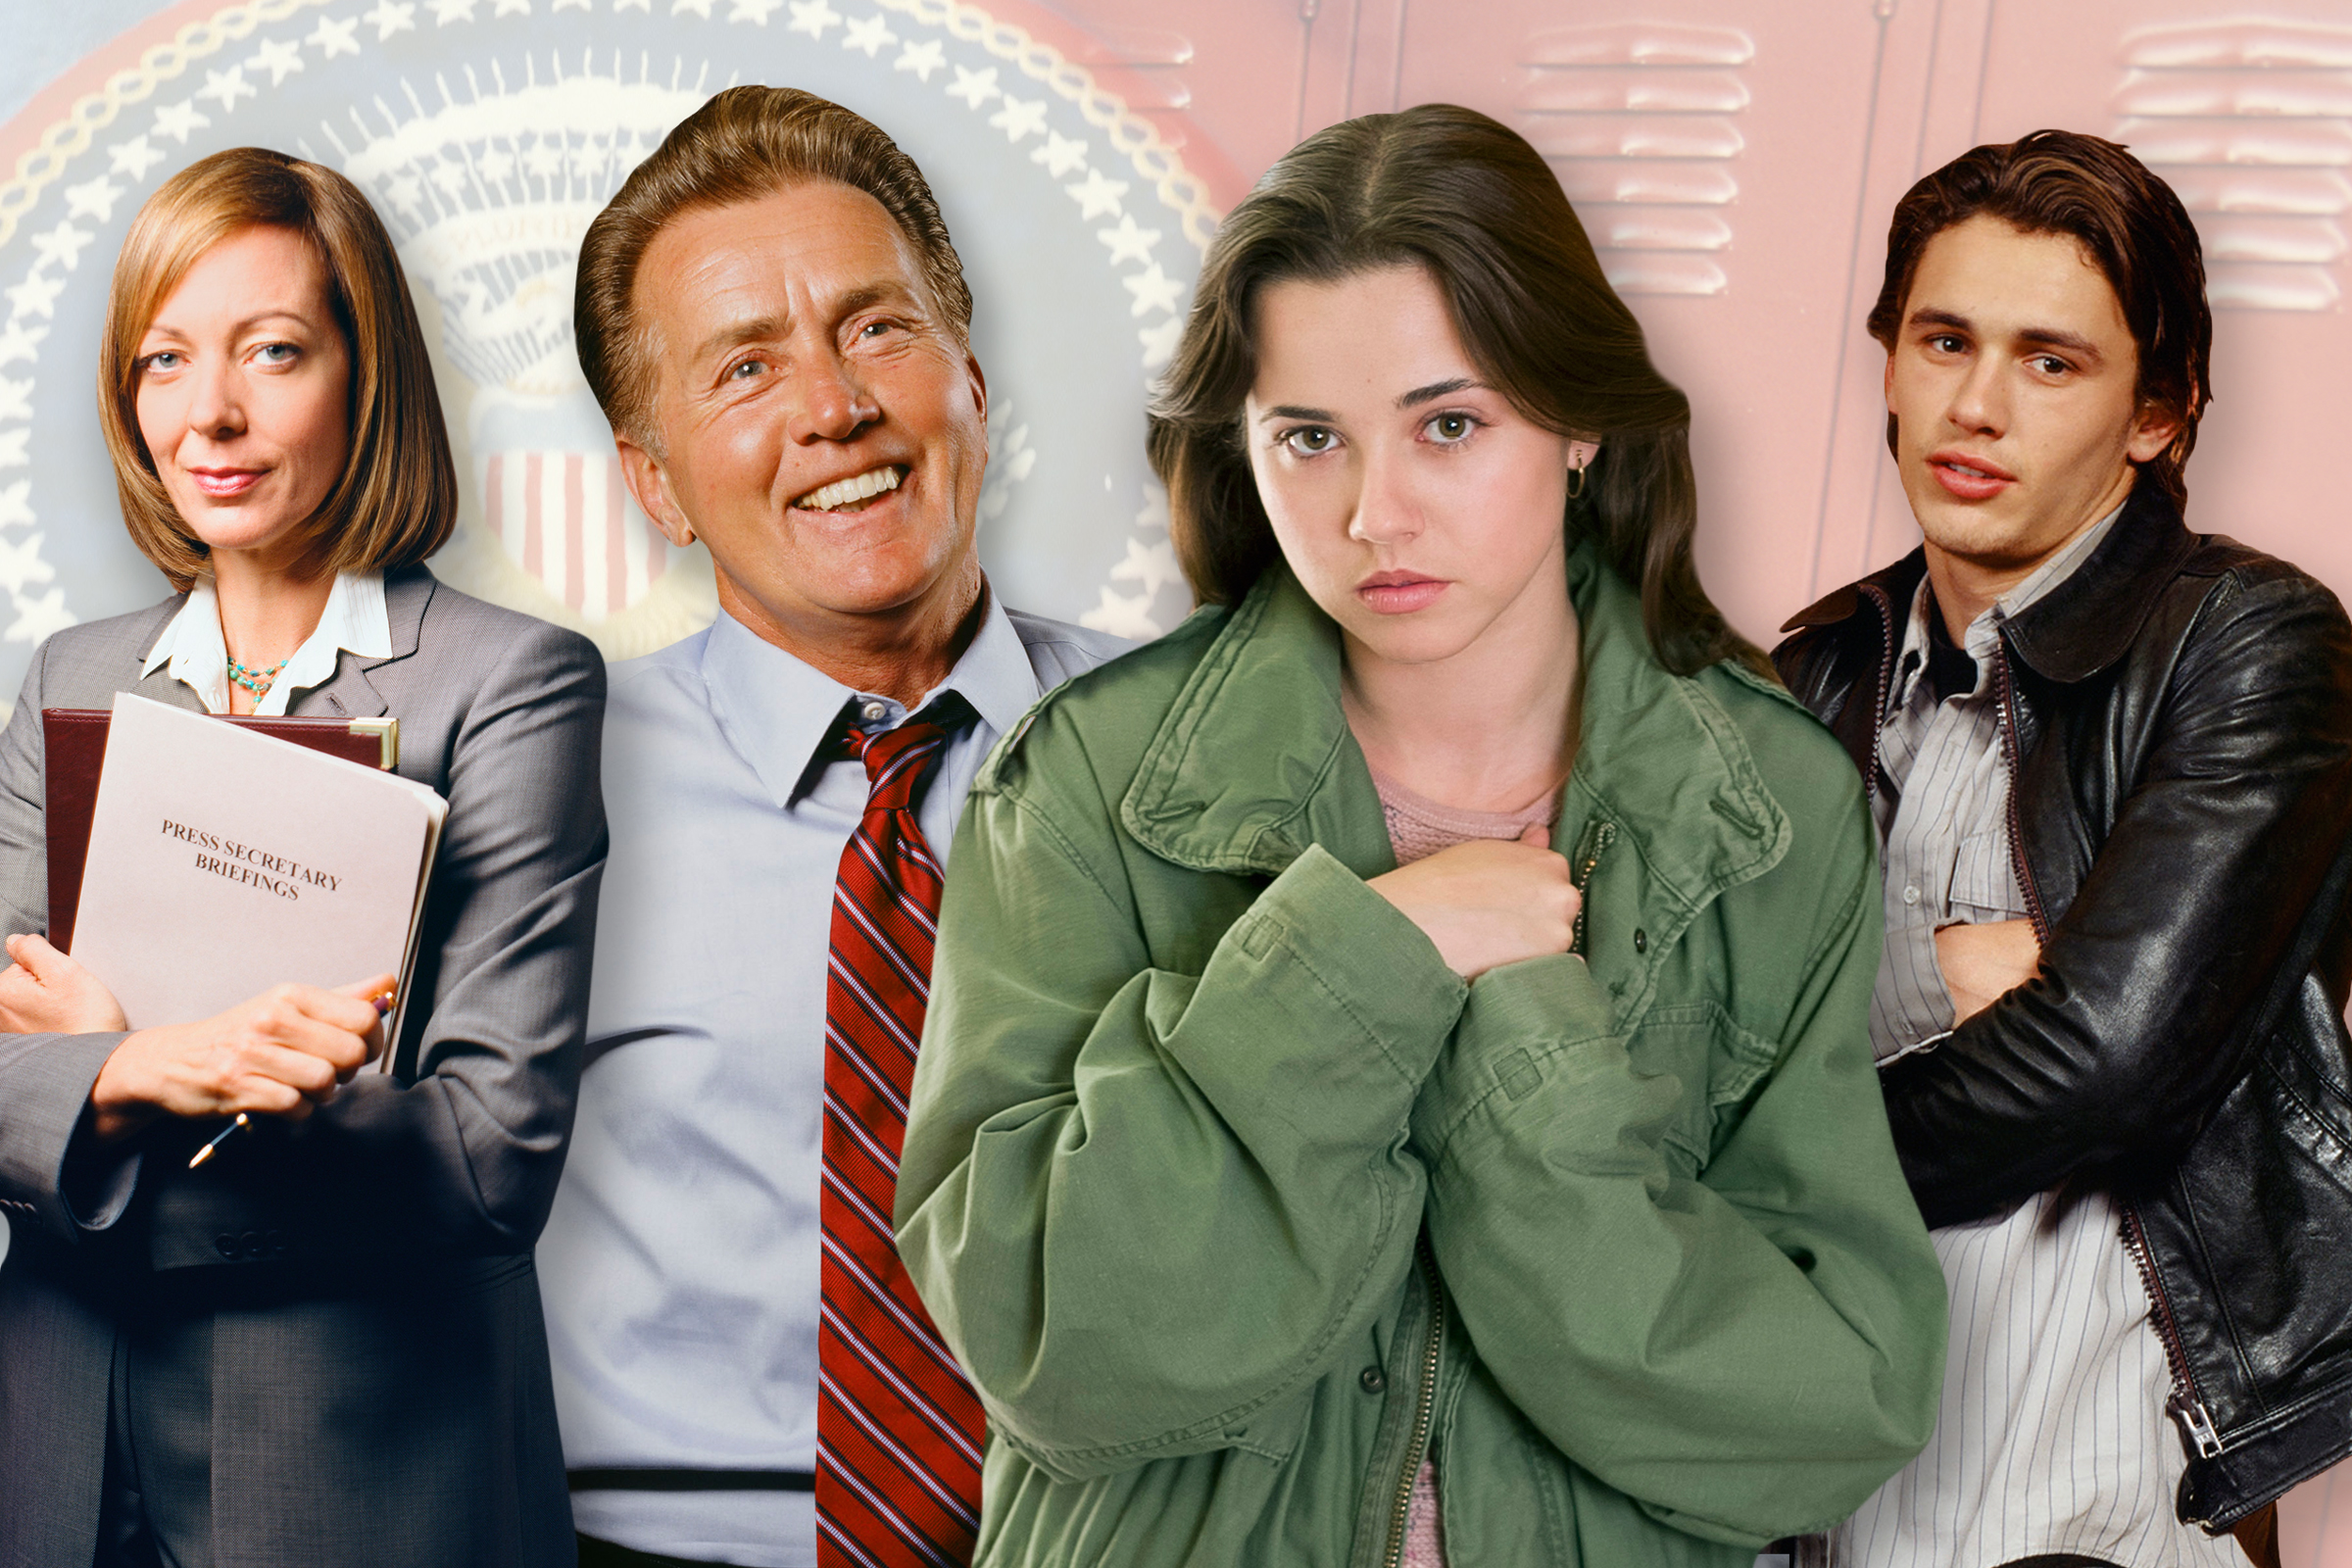 'The West Wing' vs. 'Freaks and Geeks': TV at a Crossroad in 1999